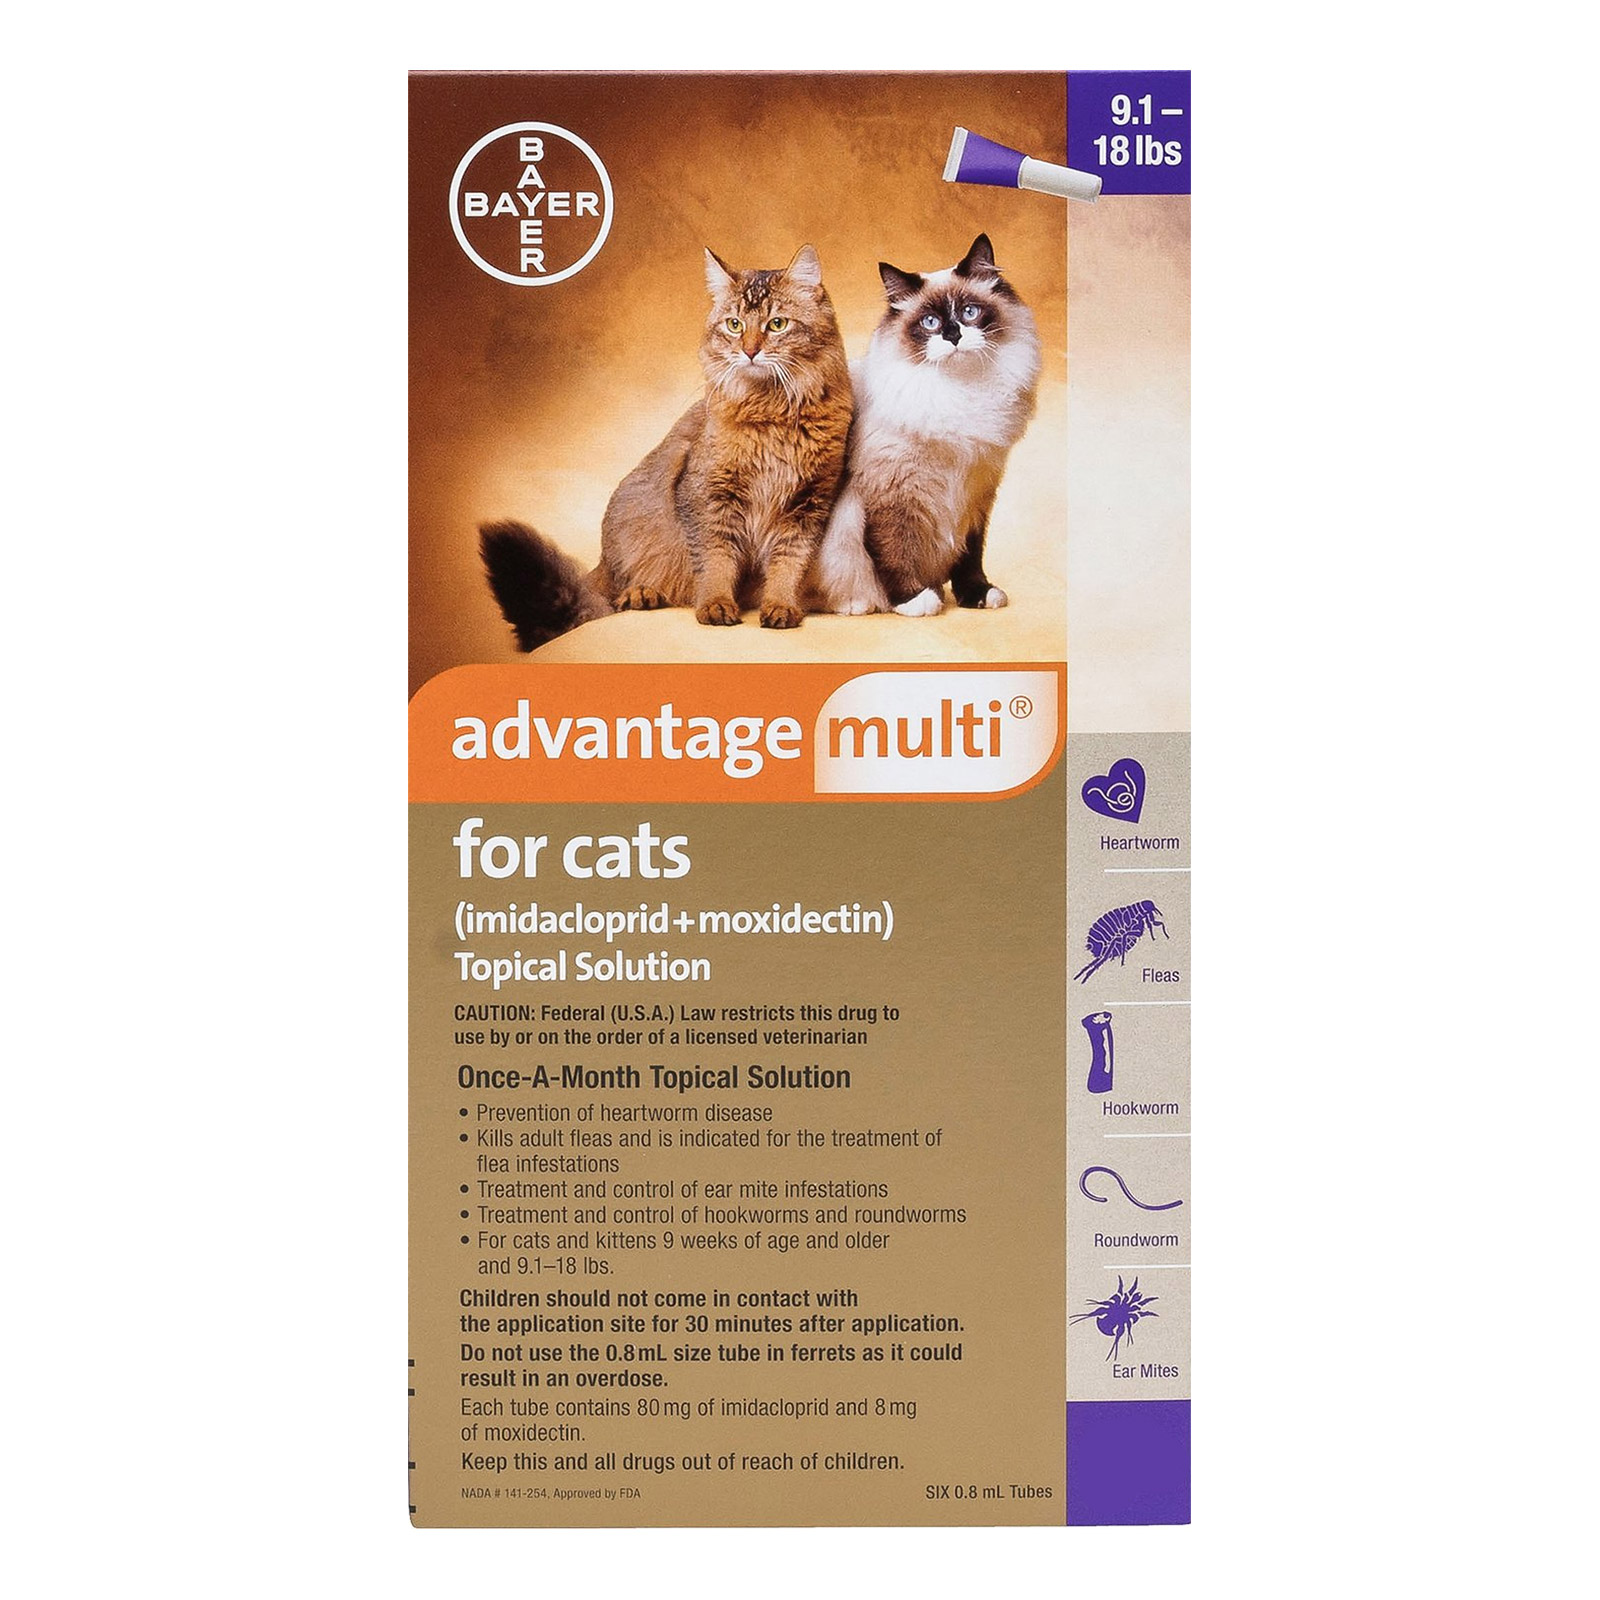 https://www.budgetpetcare.com/images/productsize/advantage-multi-advocate-cats-over-10lbs-purple.jpg